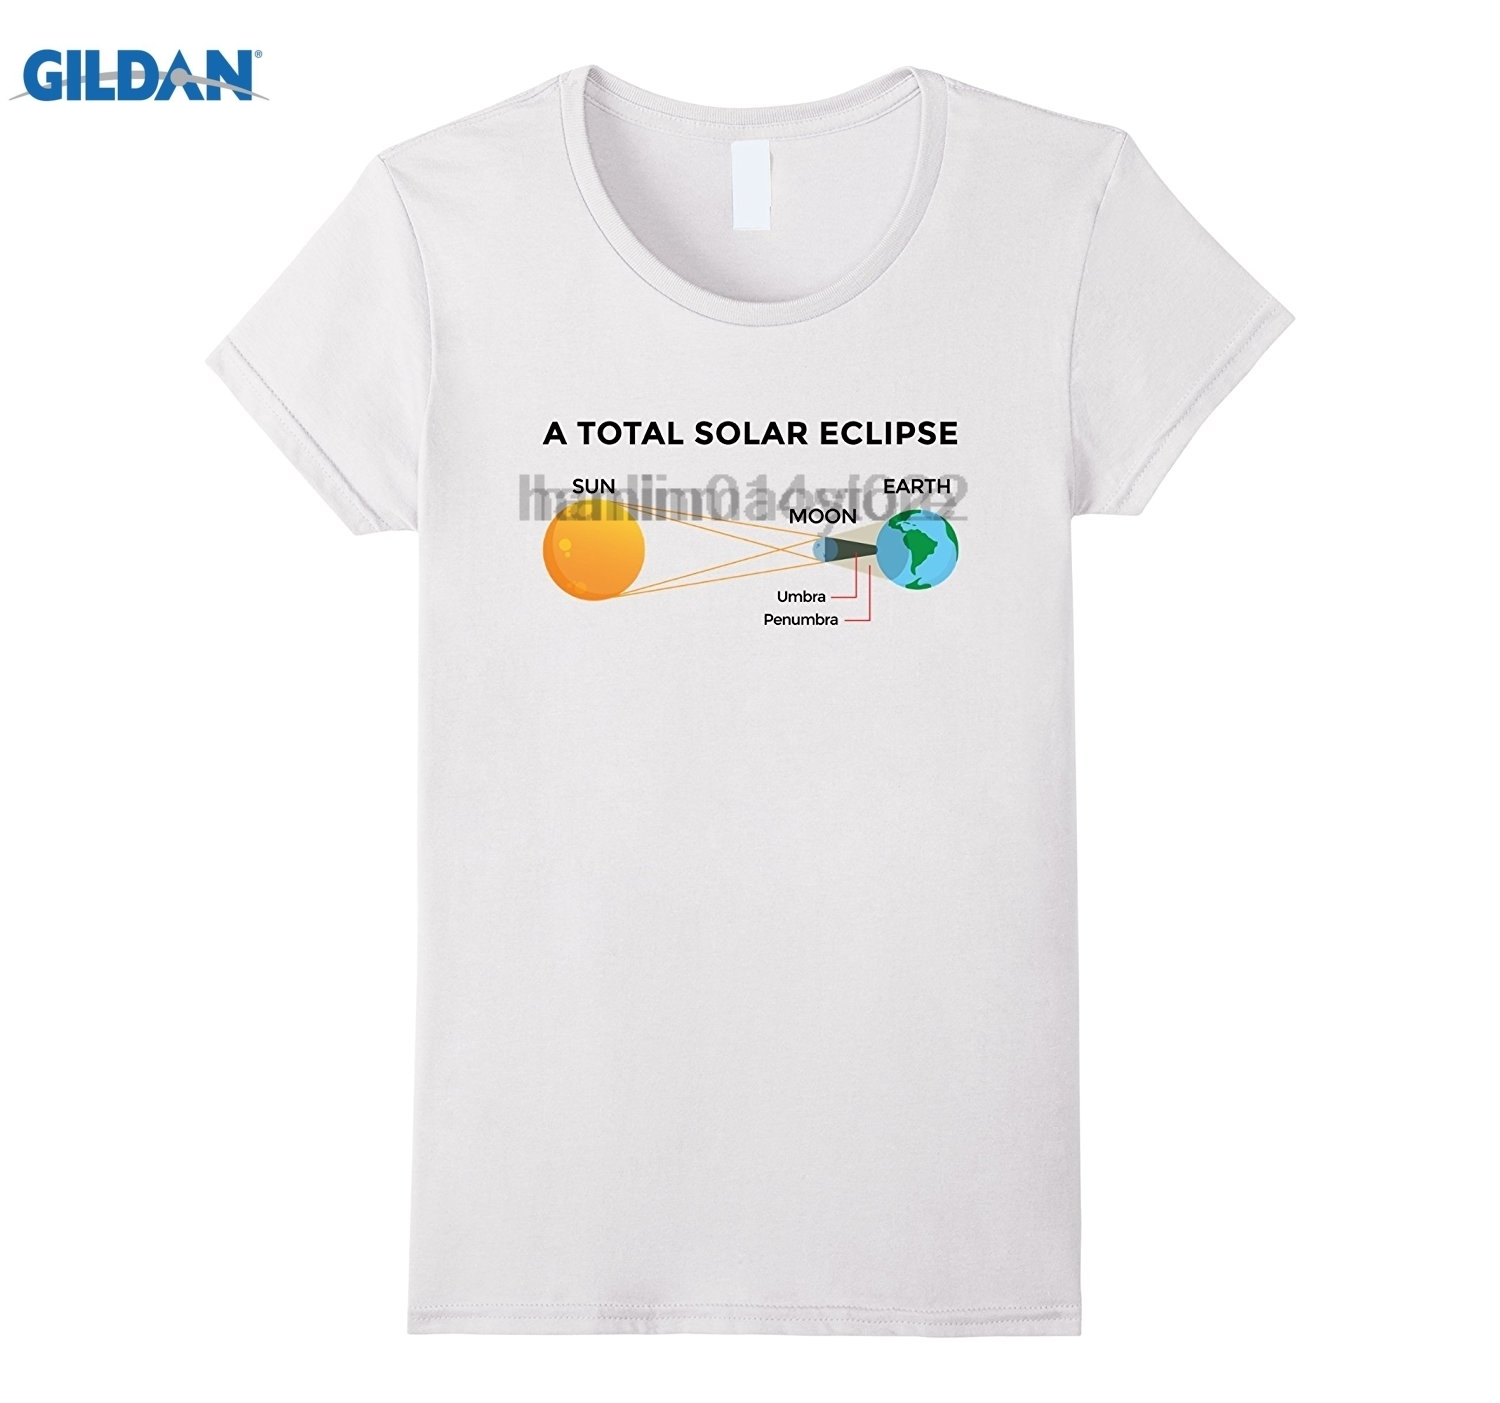 medium resolution of gildan total solar eclipse diagram t shirt in t shirts from men s clothing on aliexpress com alibaba group